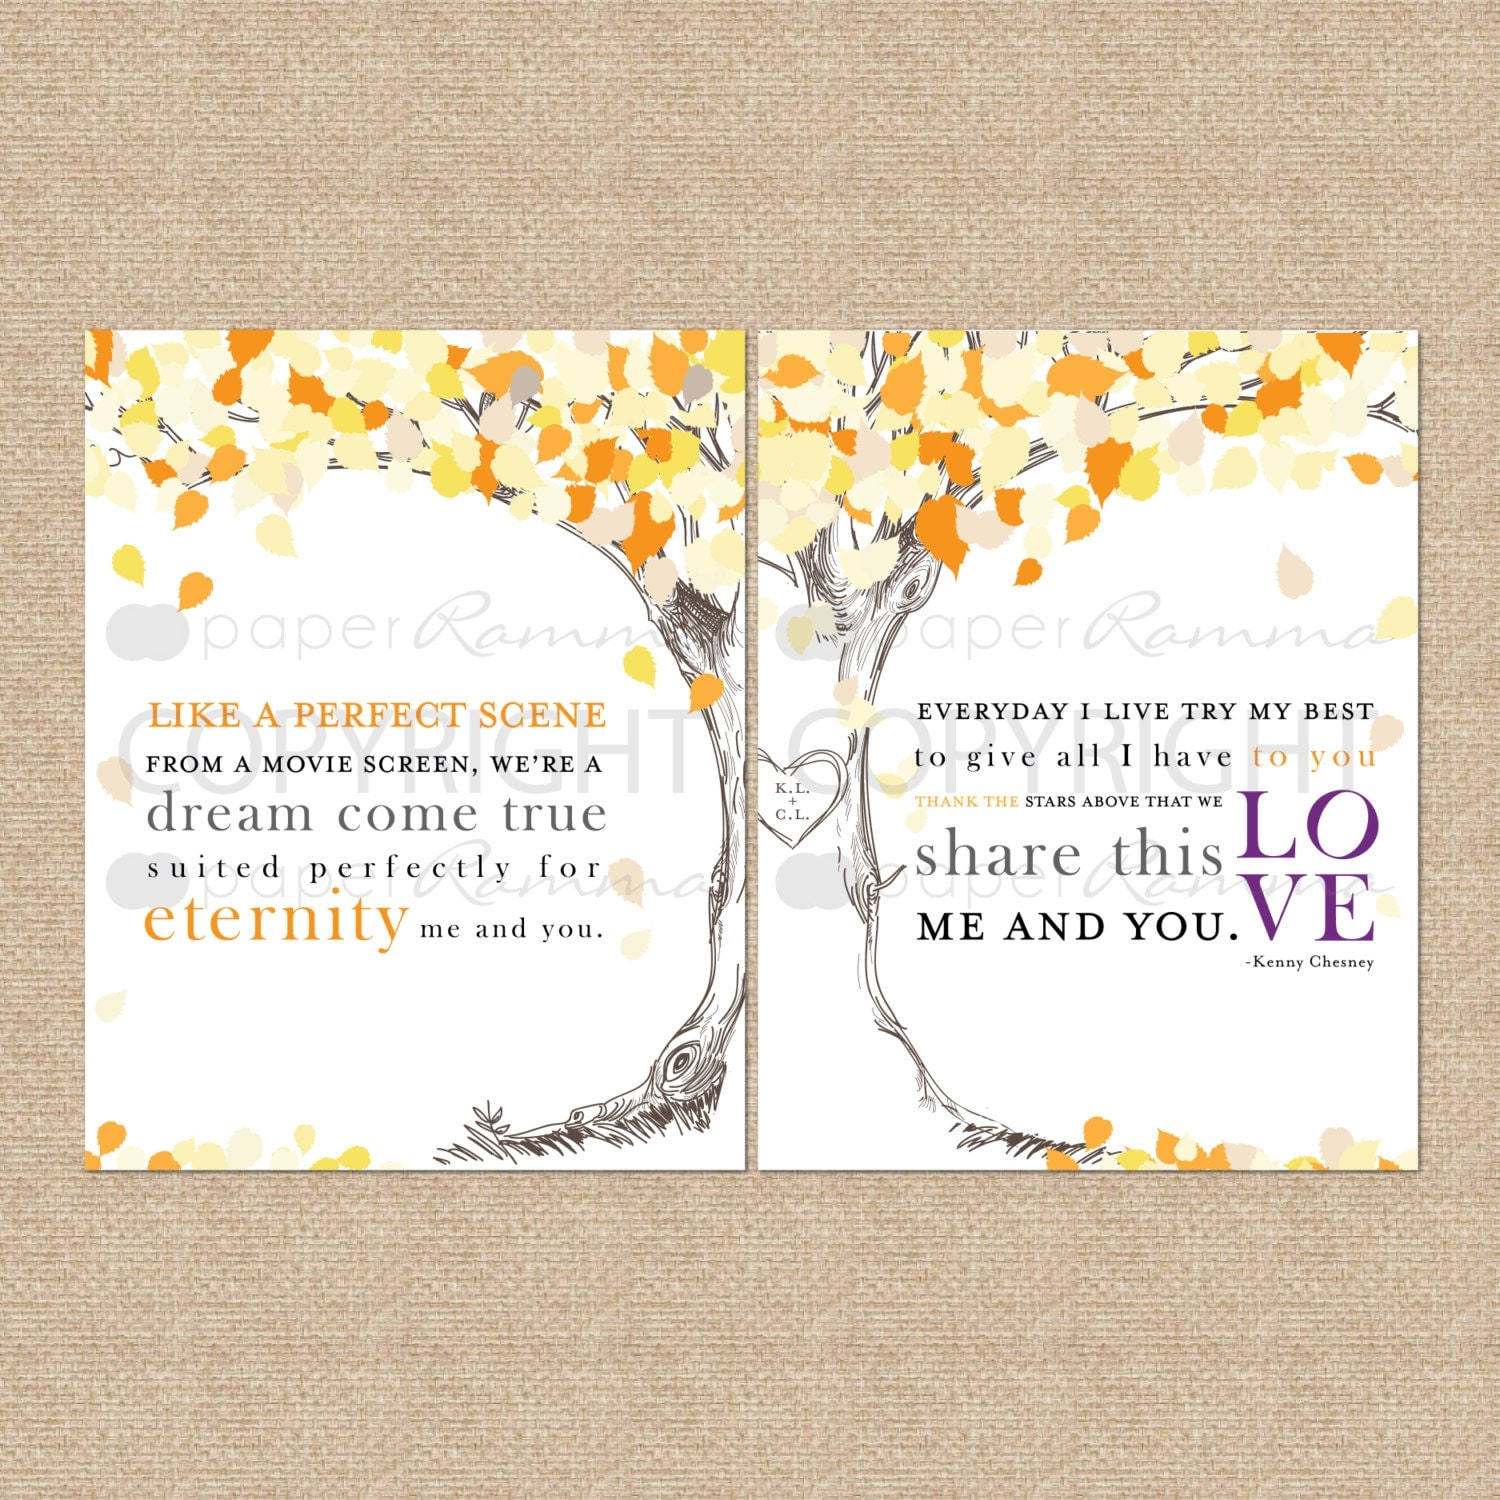 The Wedding Song Lyrics: Wedding Song Lyrics Print A Personalized Keepsake By